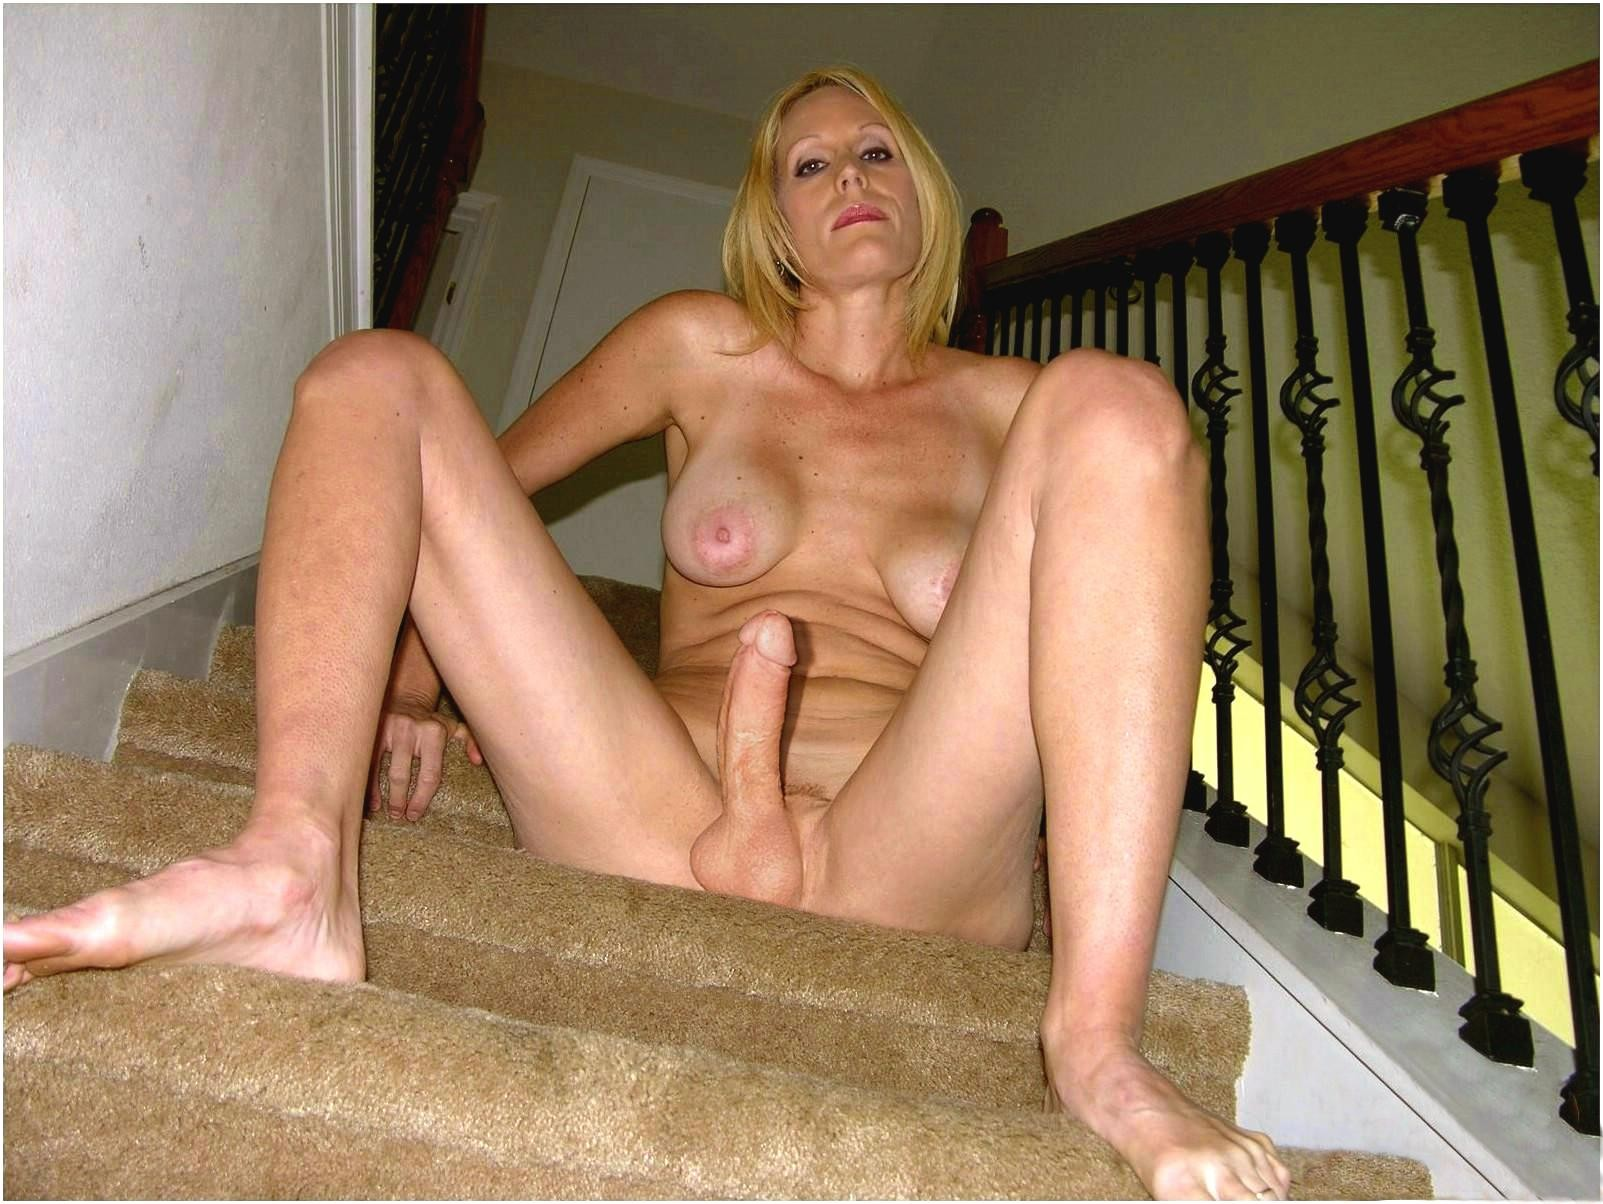 Cocks monster sex with mature having women